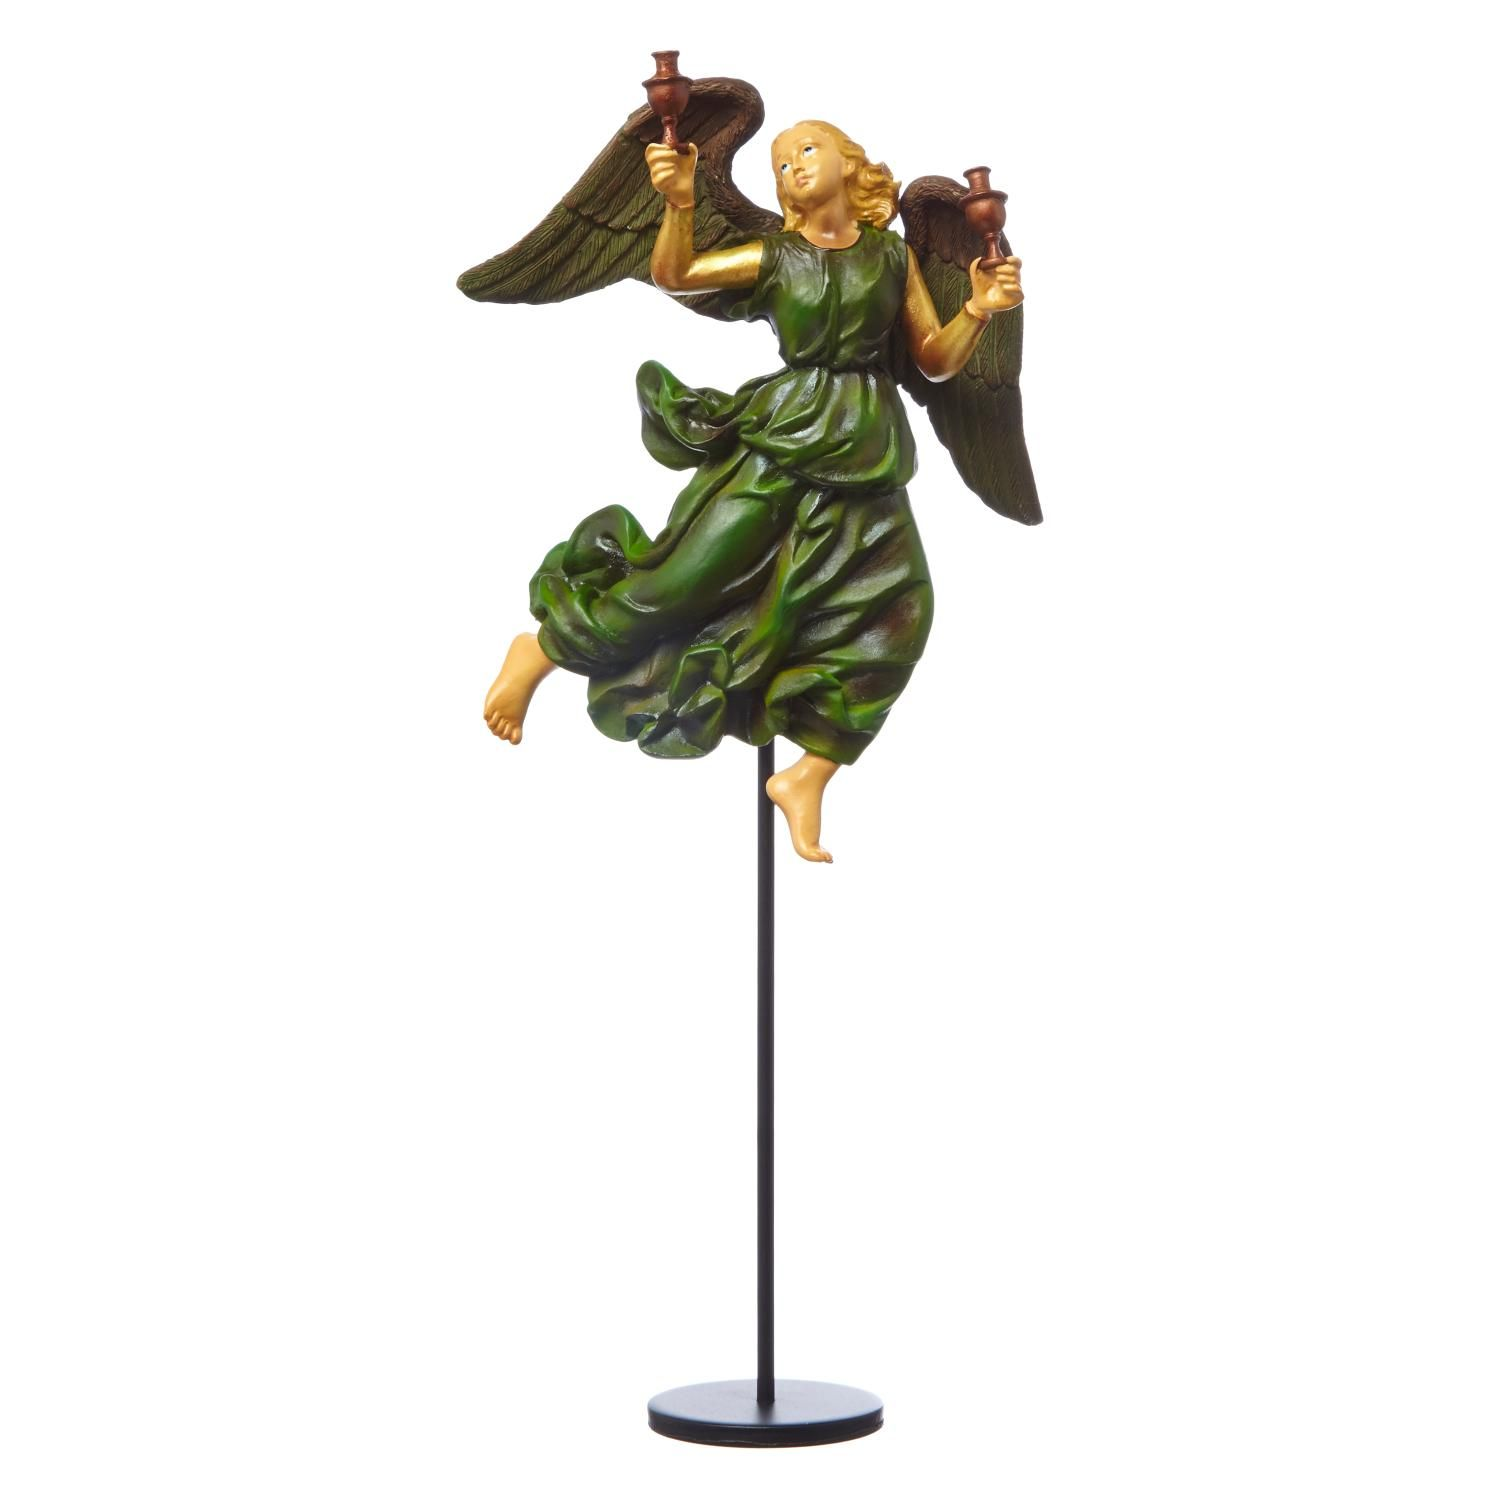 £27 - Raphael: Angel in Green Figurine. This charming hand-painted figurine inspired by Raphael's iconic painting The Mond Crucifixion, has been individually crafted by experienced and highly skilled craftsmen. Made from resin, it comes complete with a card featuring the painting, a description about the 'Angel in Green' character and information on the artist Raphael. #AngelTrail